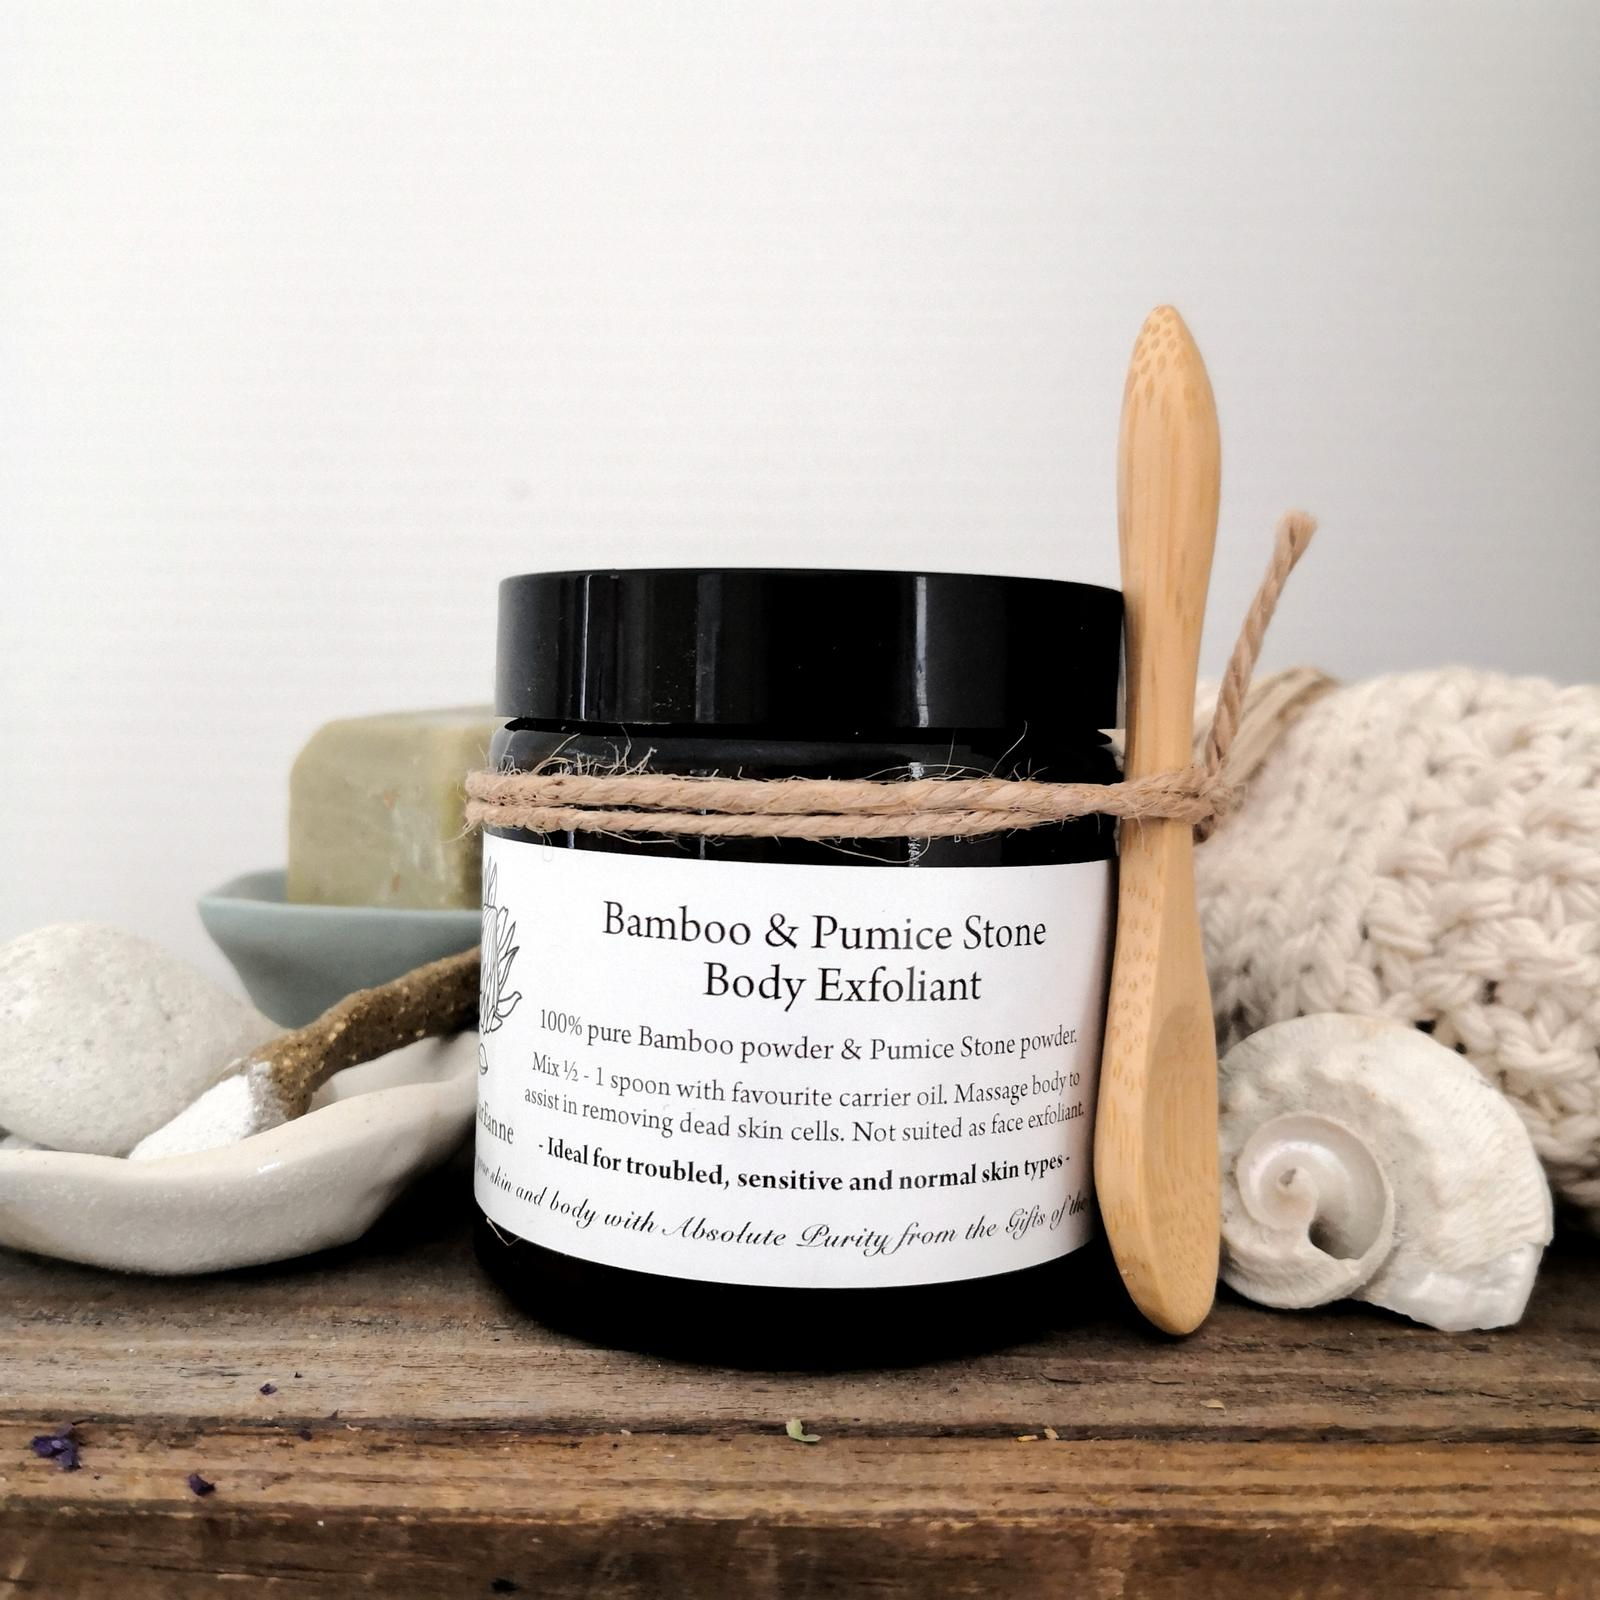 Bamboo powder & Pumice Stone Body Exfoliant